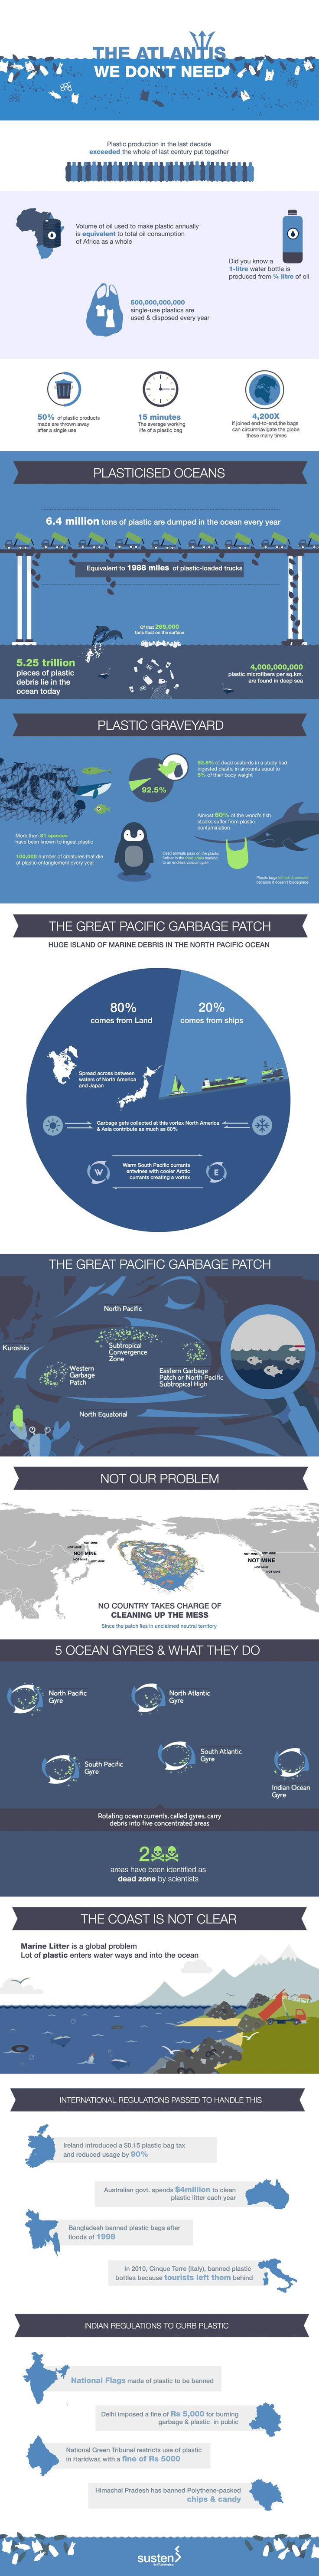 The Great Pacific Garbage Patch is a stretch of garbage spread out in the  middle of the pacific ocean between the Japan and U.S.A.   Junk, plastic and waste from across the  world has accumulated in this area and it poses as a grave issue for the environment.